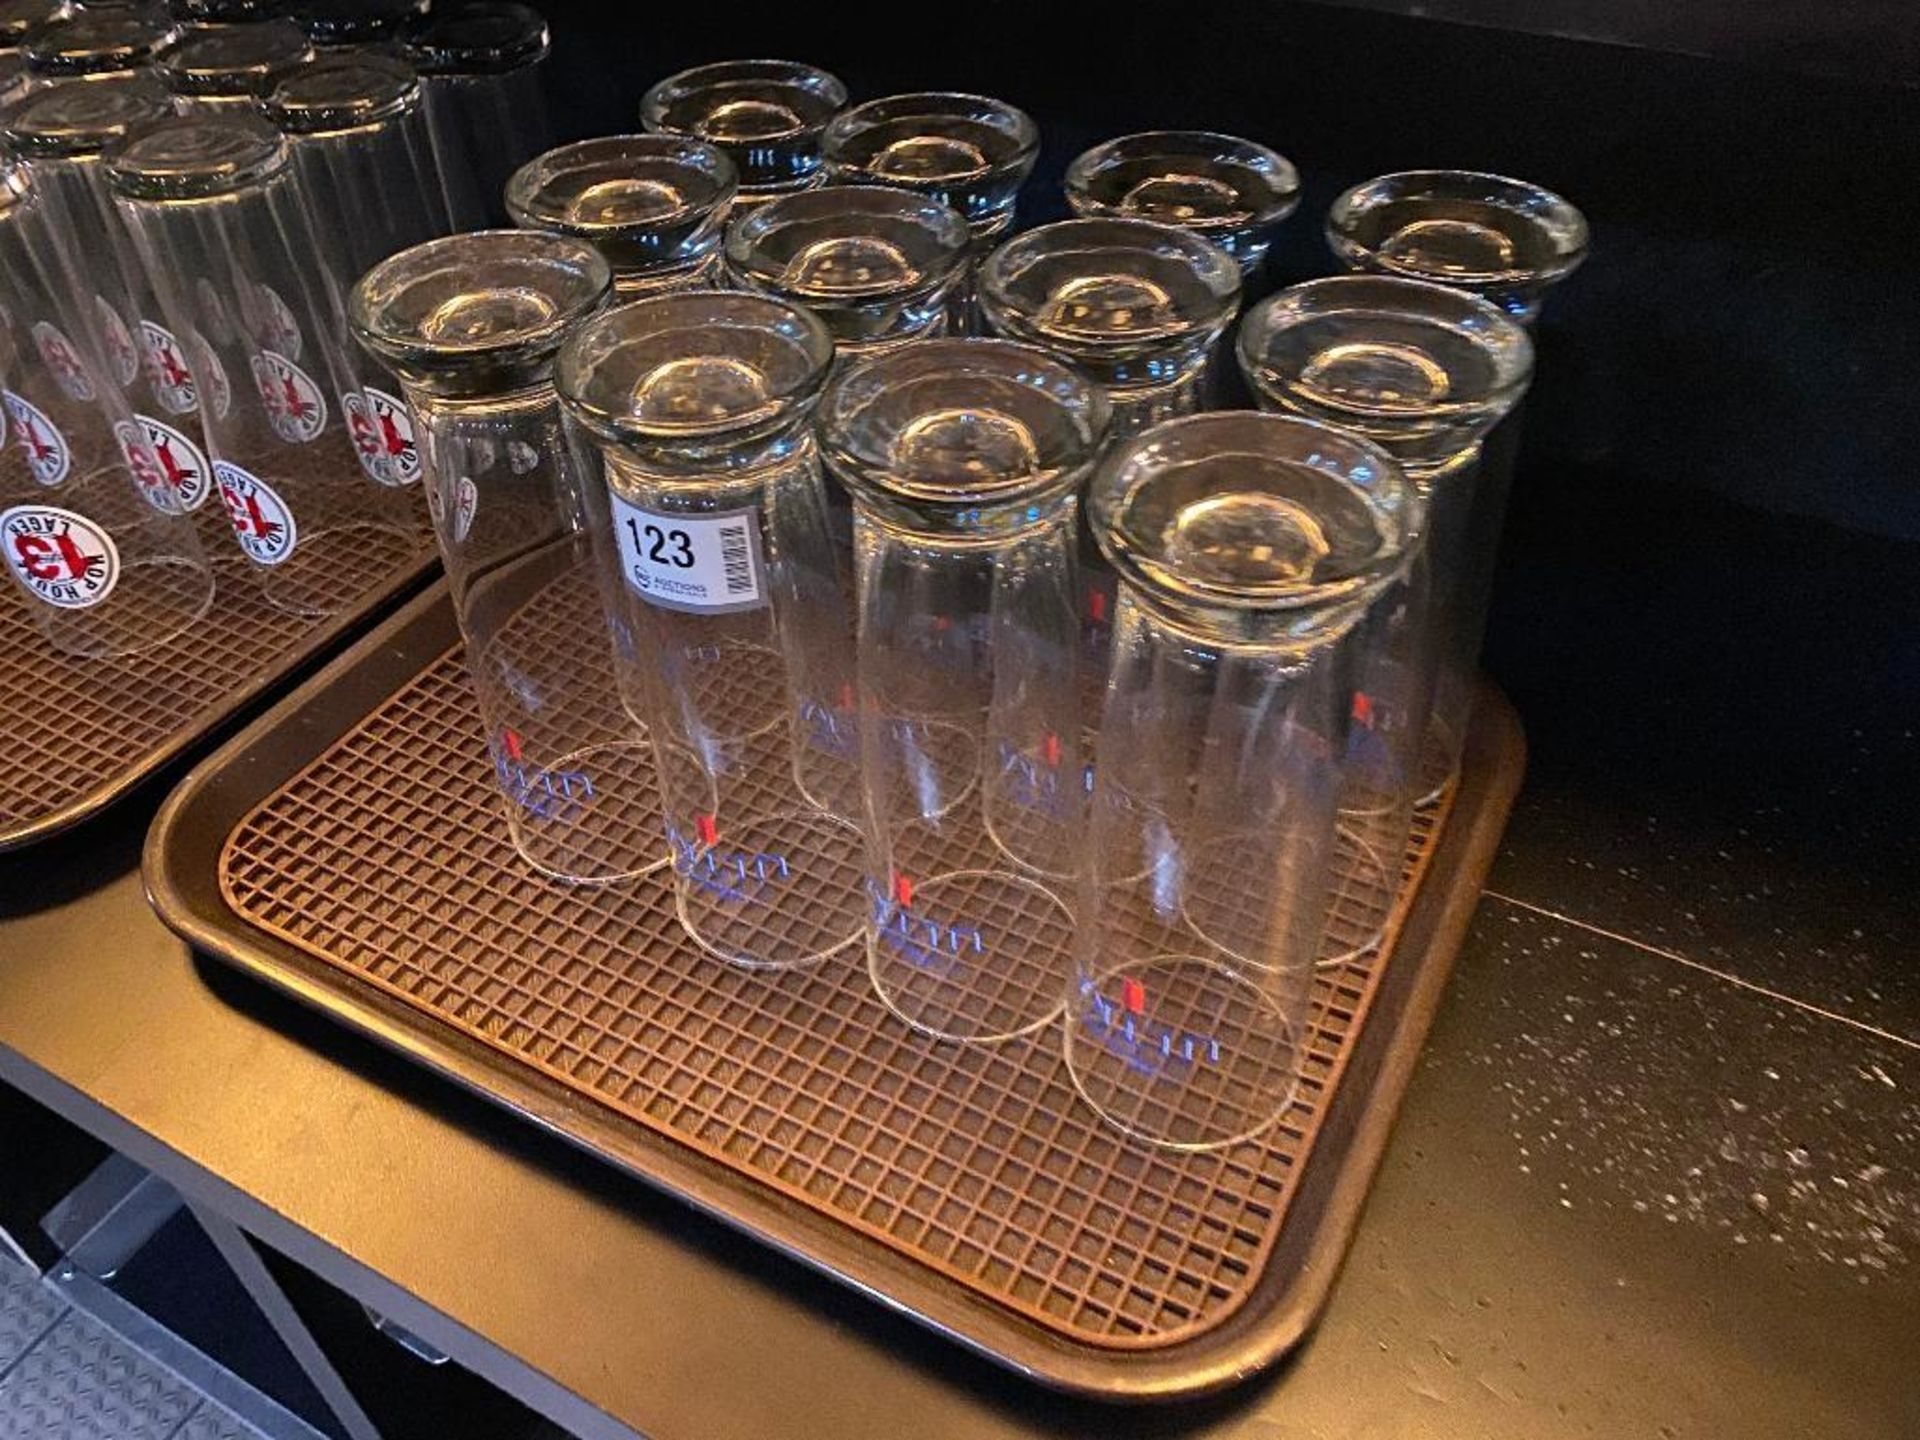 LOT OF (12) MICHELOB ULTRA GLASSES - Image 2 of 2